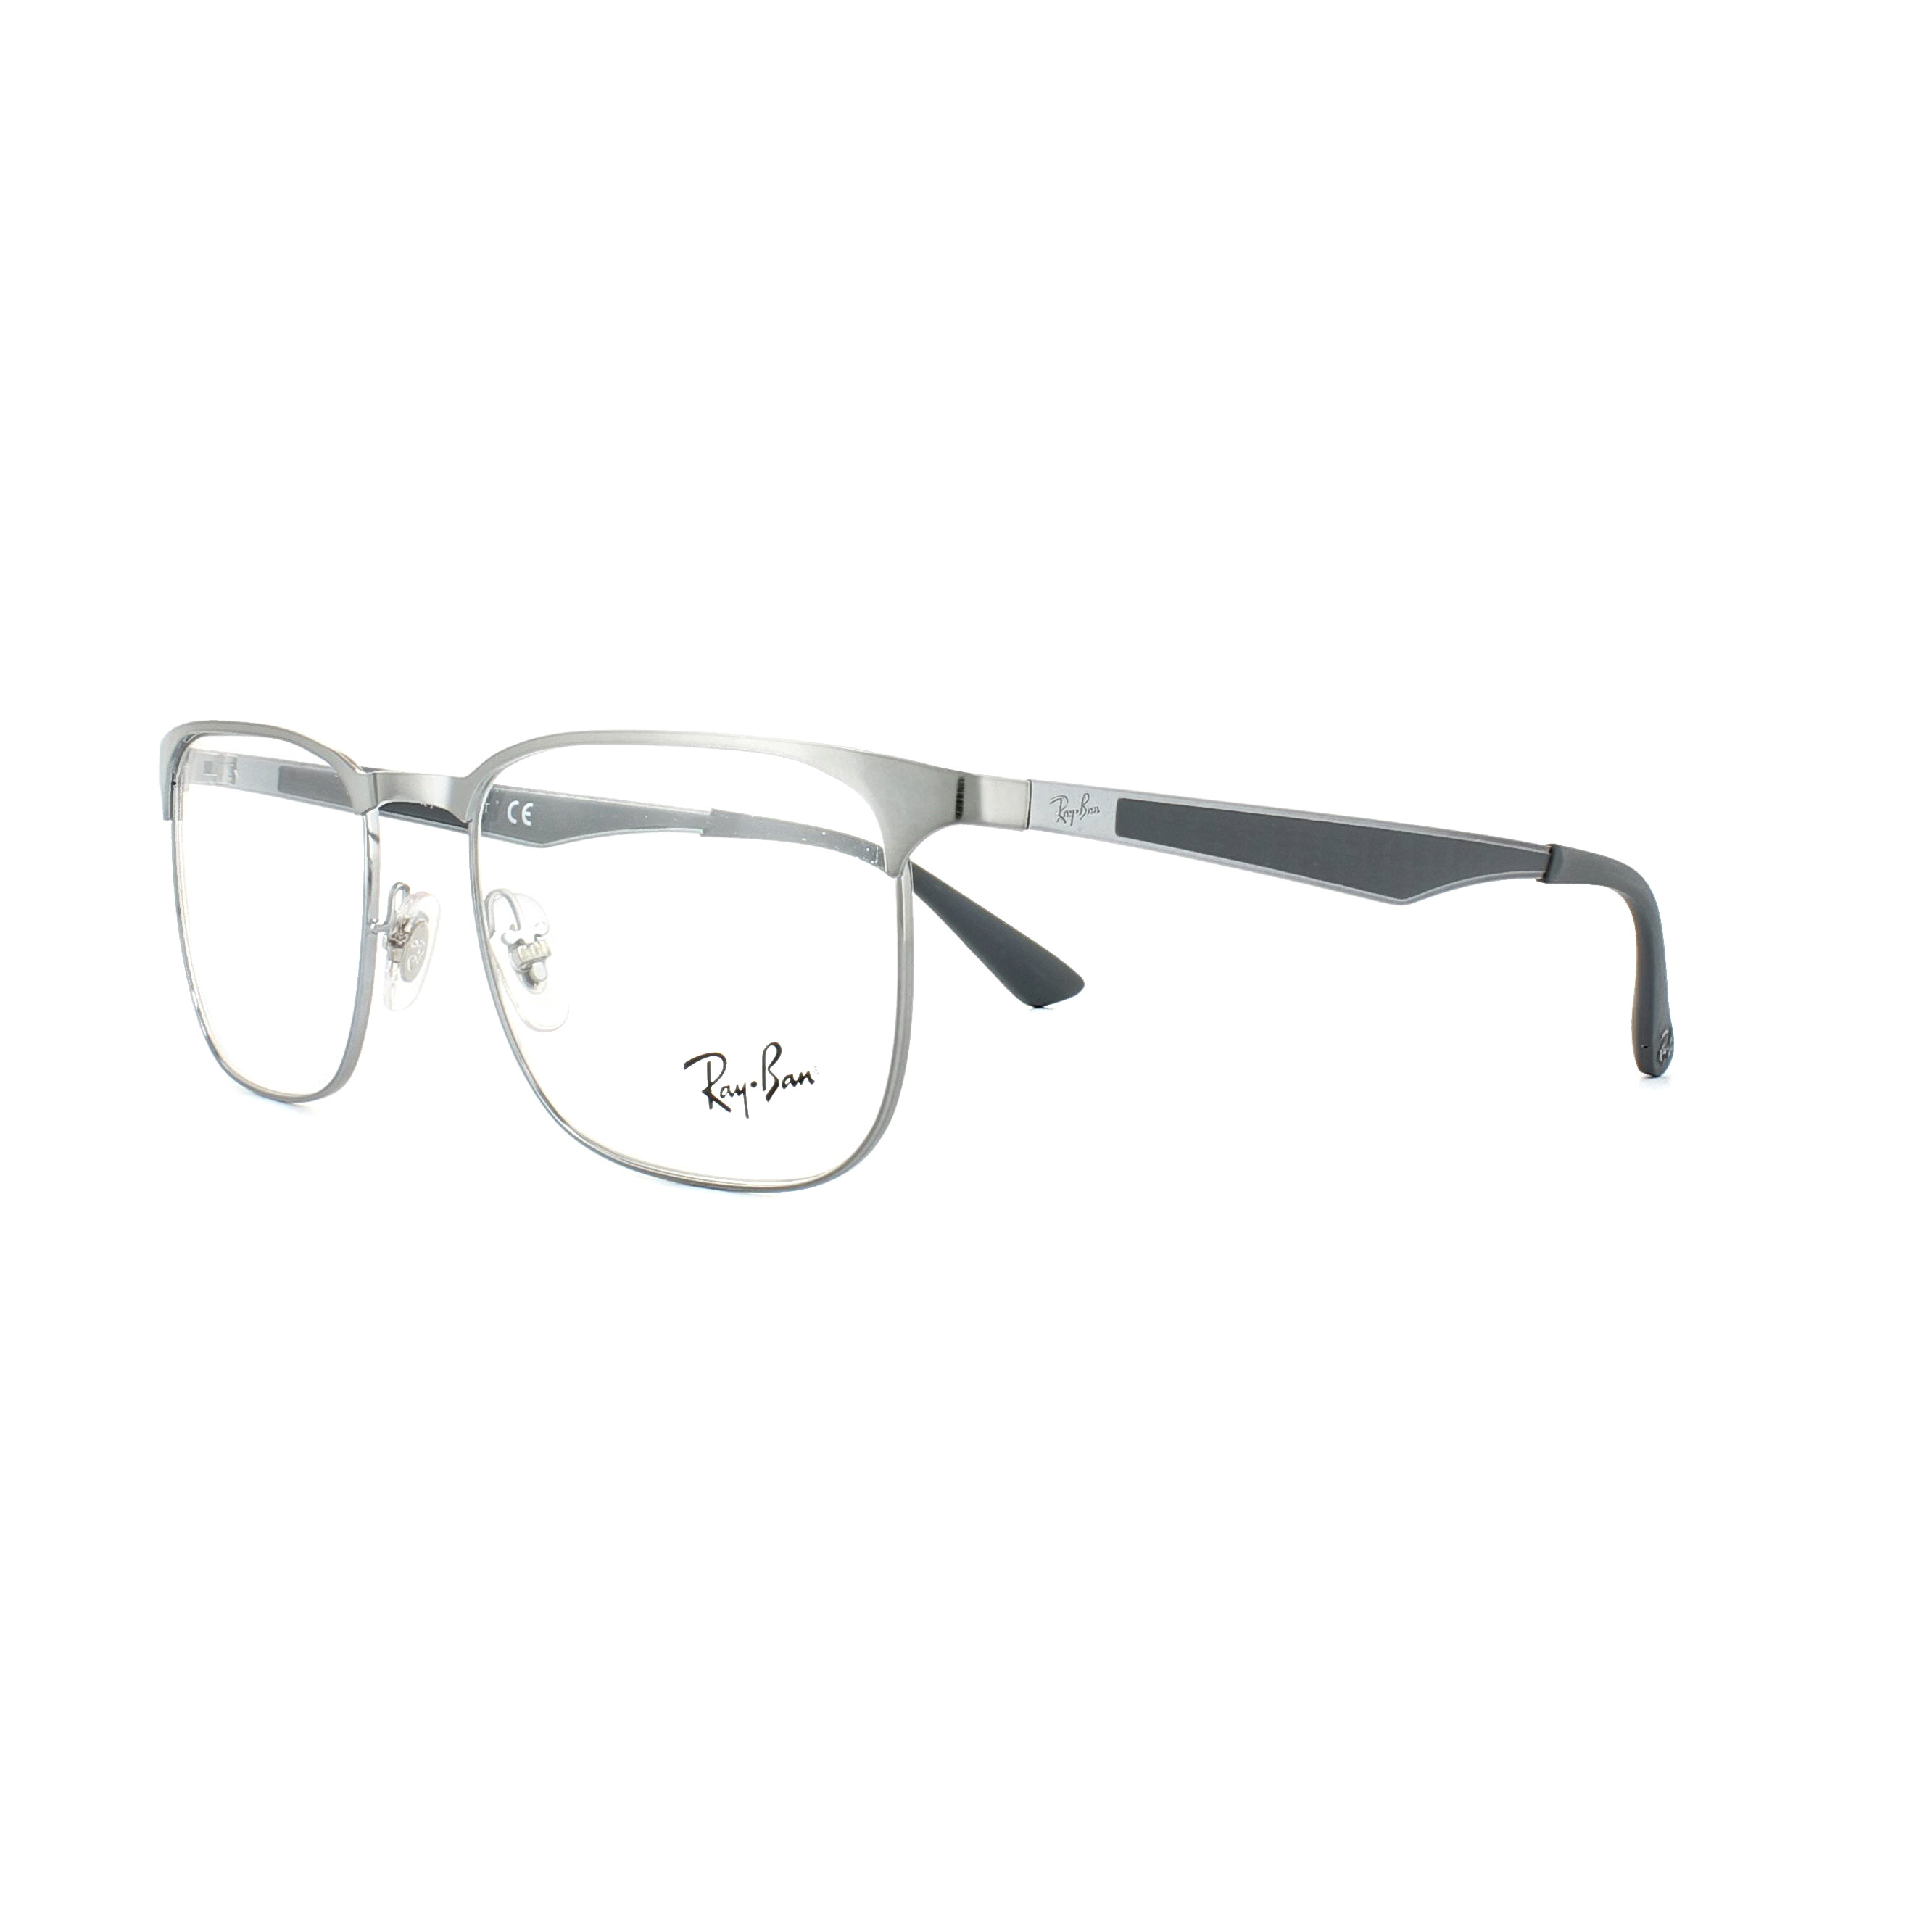 0c6acf97e9 Sentinel Ray-Ban Glasses Frames 6363 2553 Gunmetal 52mm Mens Womens